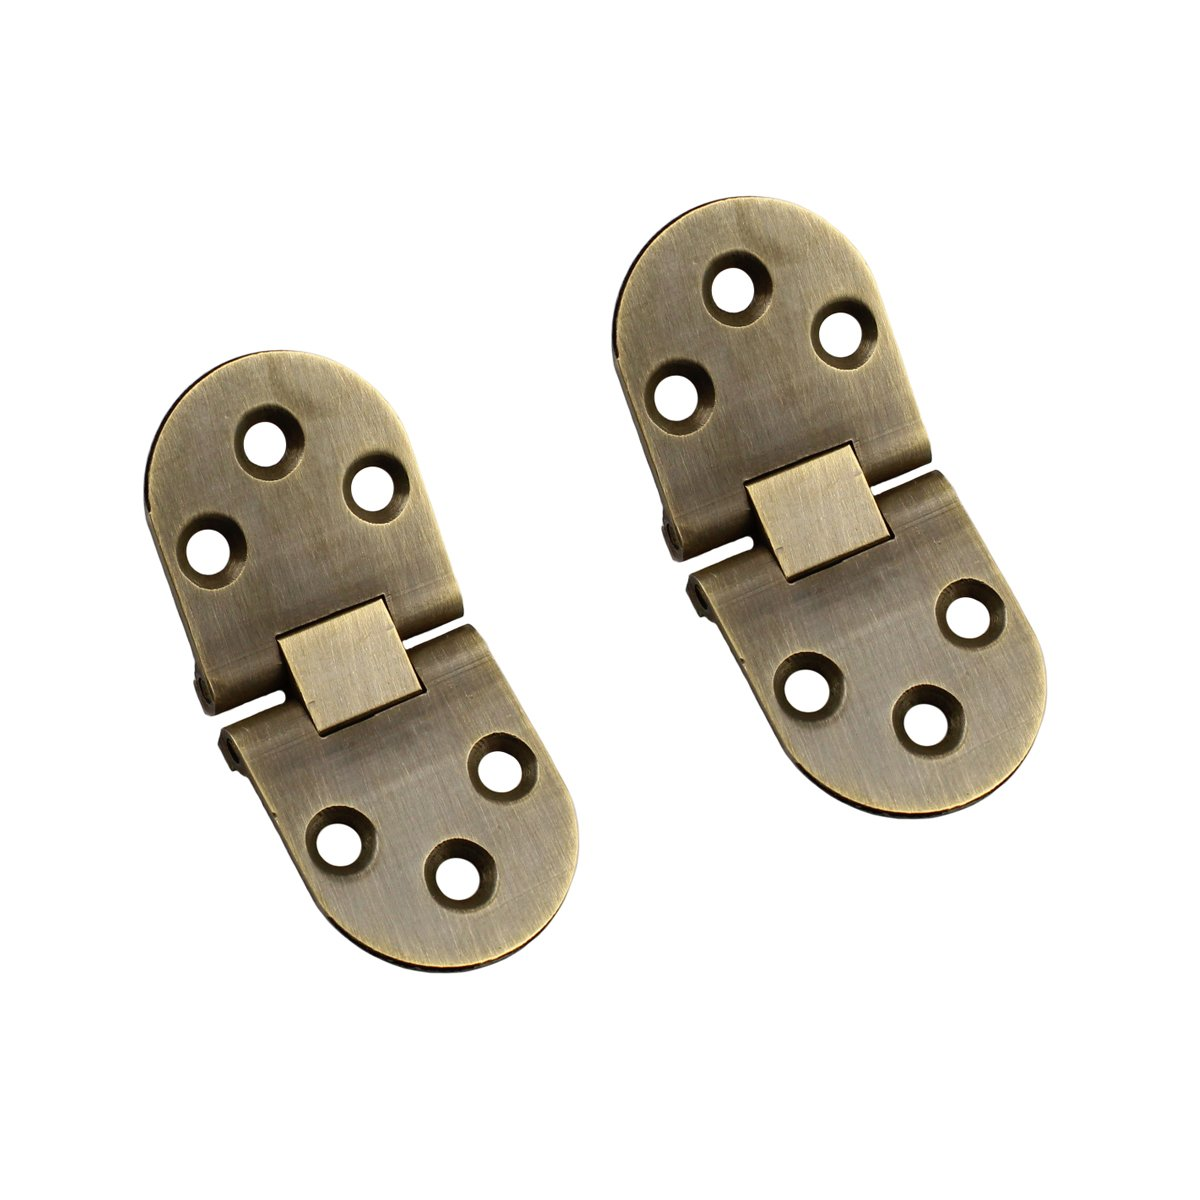 RZDEAL 2PCS Thickness Flip Top Hinges Hardware Accessory for Folding Furniture(DIY) (B)